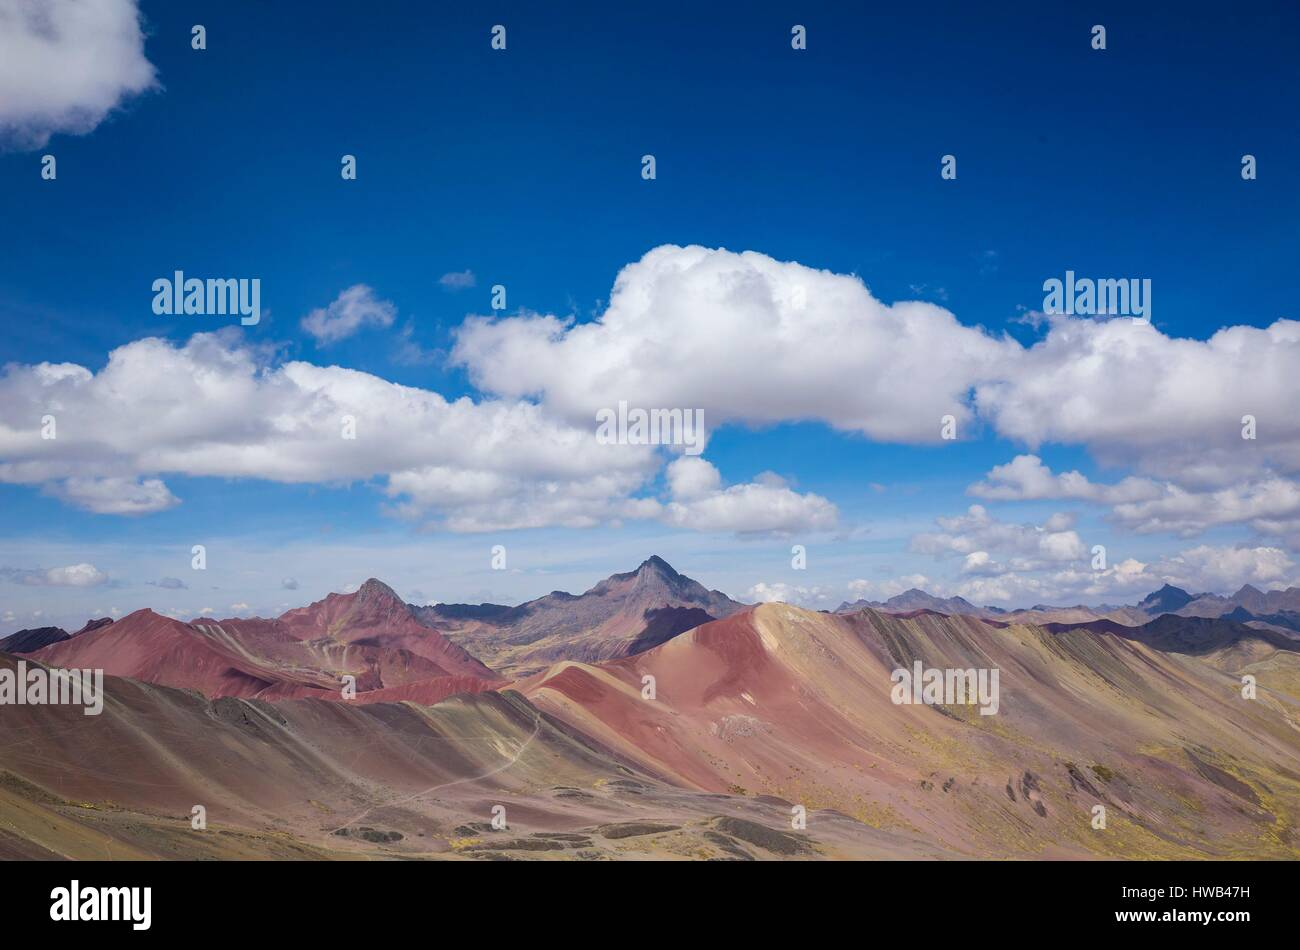 Mountain living near cusco peru royalty free stock photo - Peru Cusco Area Andes Cordillera Ausangate Range The Winicunca Also Known As Rainbow Mountain Is A Gelological Wonder Located At 4800 Meters Above